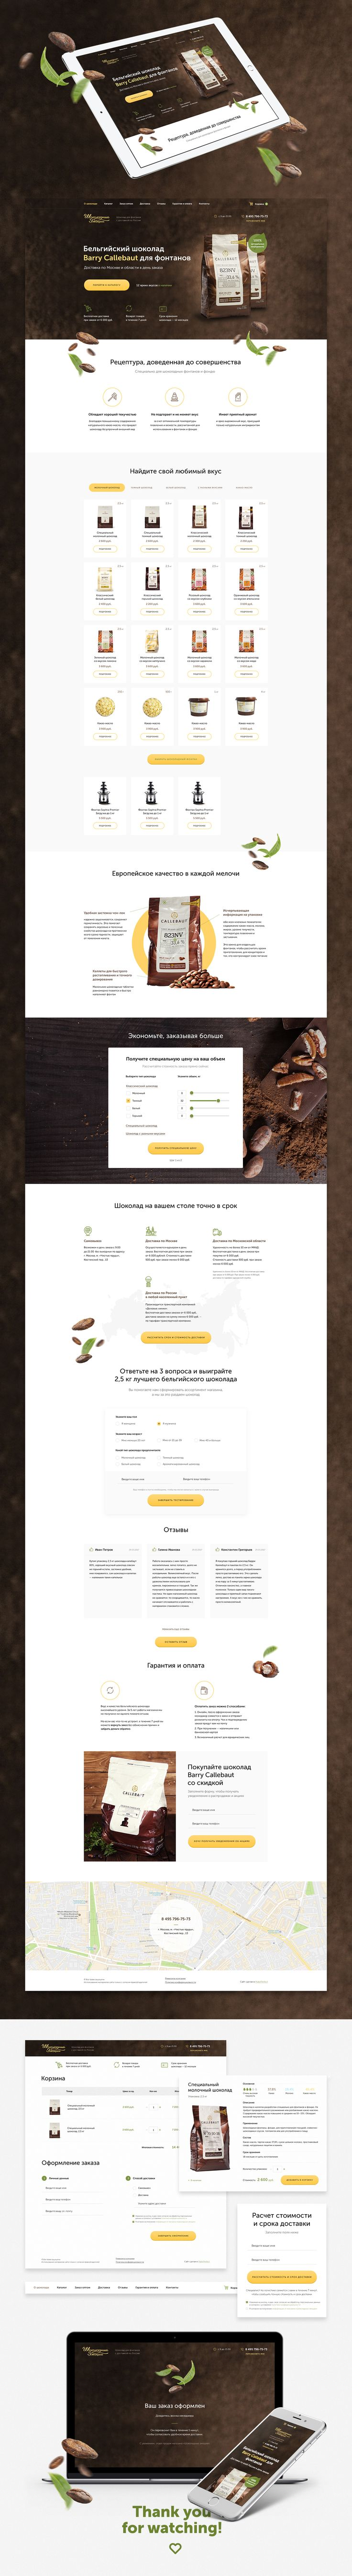 """Check out my @Behance project: """"Landing page for Belgium chocolate Barry Callebaut"""" https://www.behance.net/gallery/52773479/Landing-page-for-Belgium-chocolate-Barry-Callebaut"""